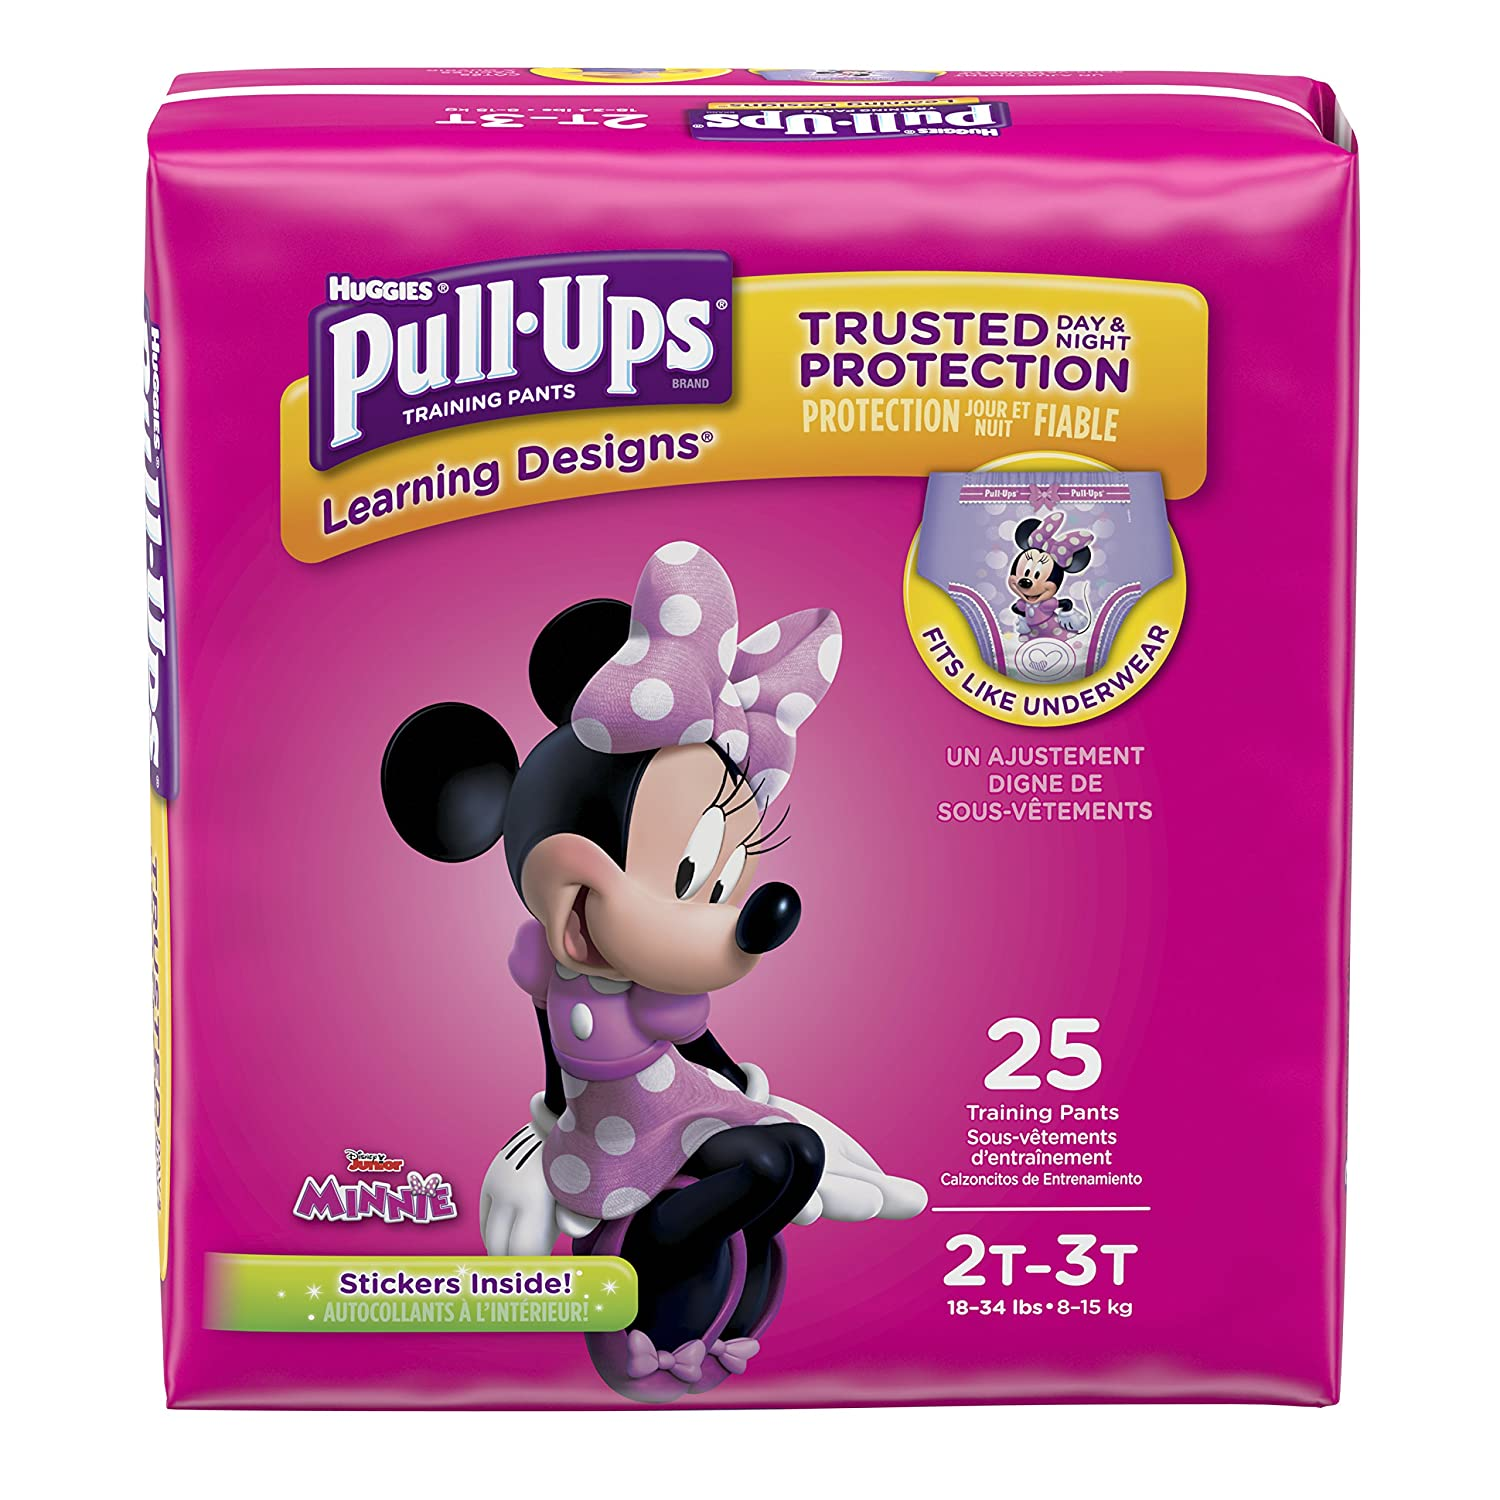 Pull-Ups Learning Designs Training Pants for Girls, 2T-3T Kimberly Clark 10036000451327